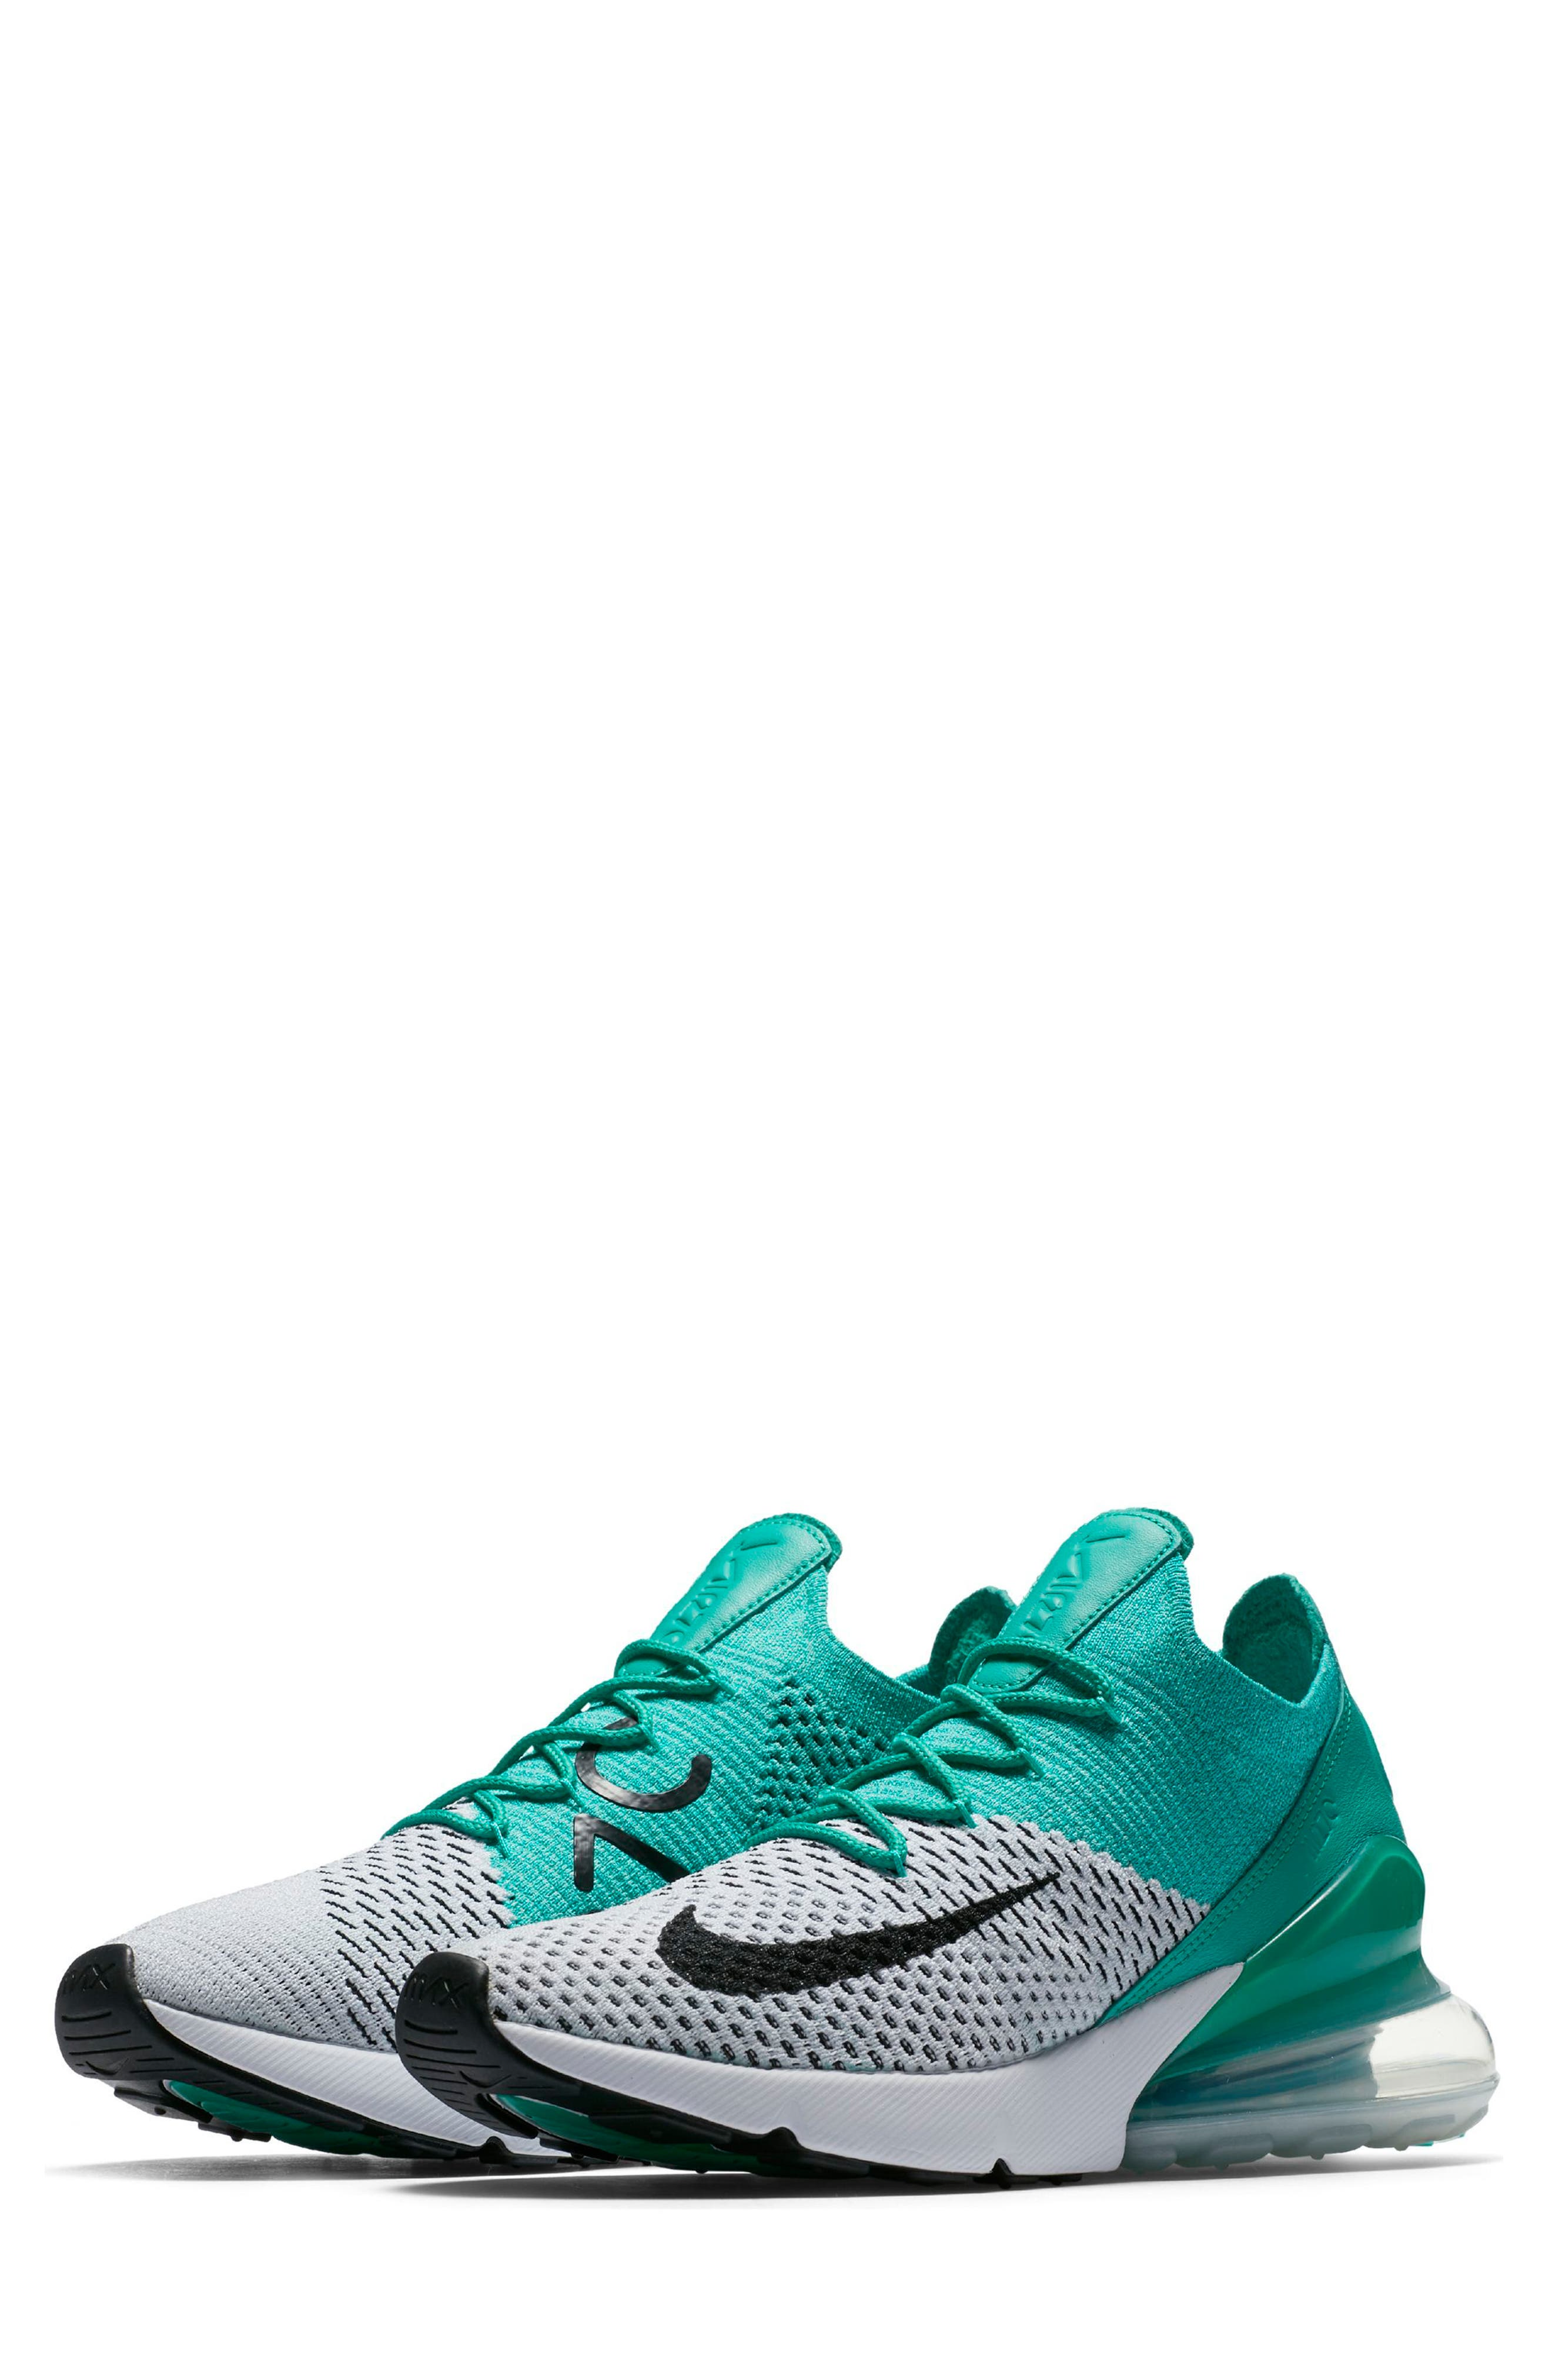 Air Max 270 Flyknit Sneaker,                         Main,                         color, Emerald/ Black/ Pure Platinum